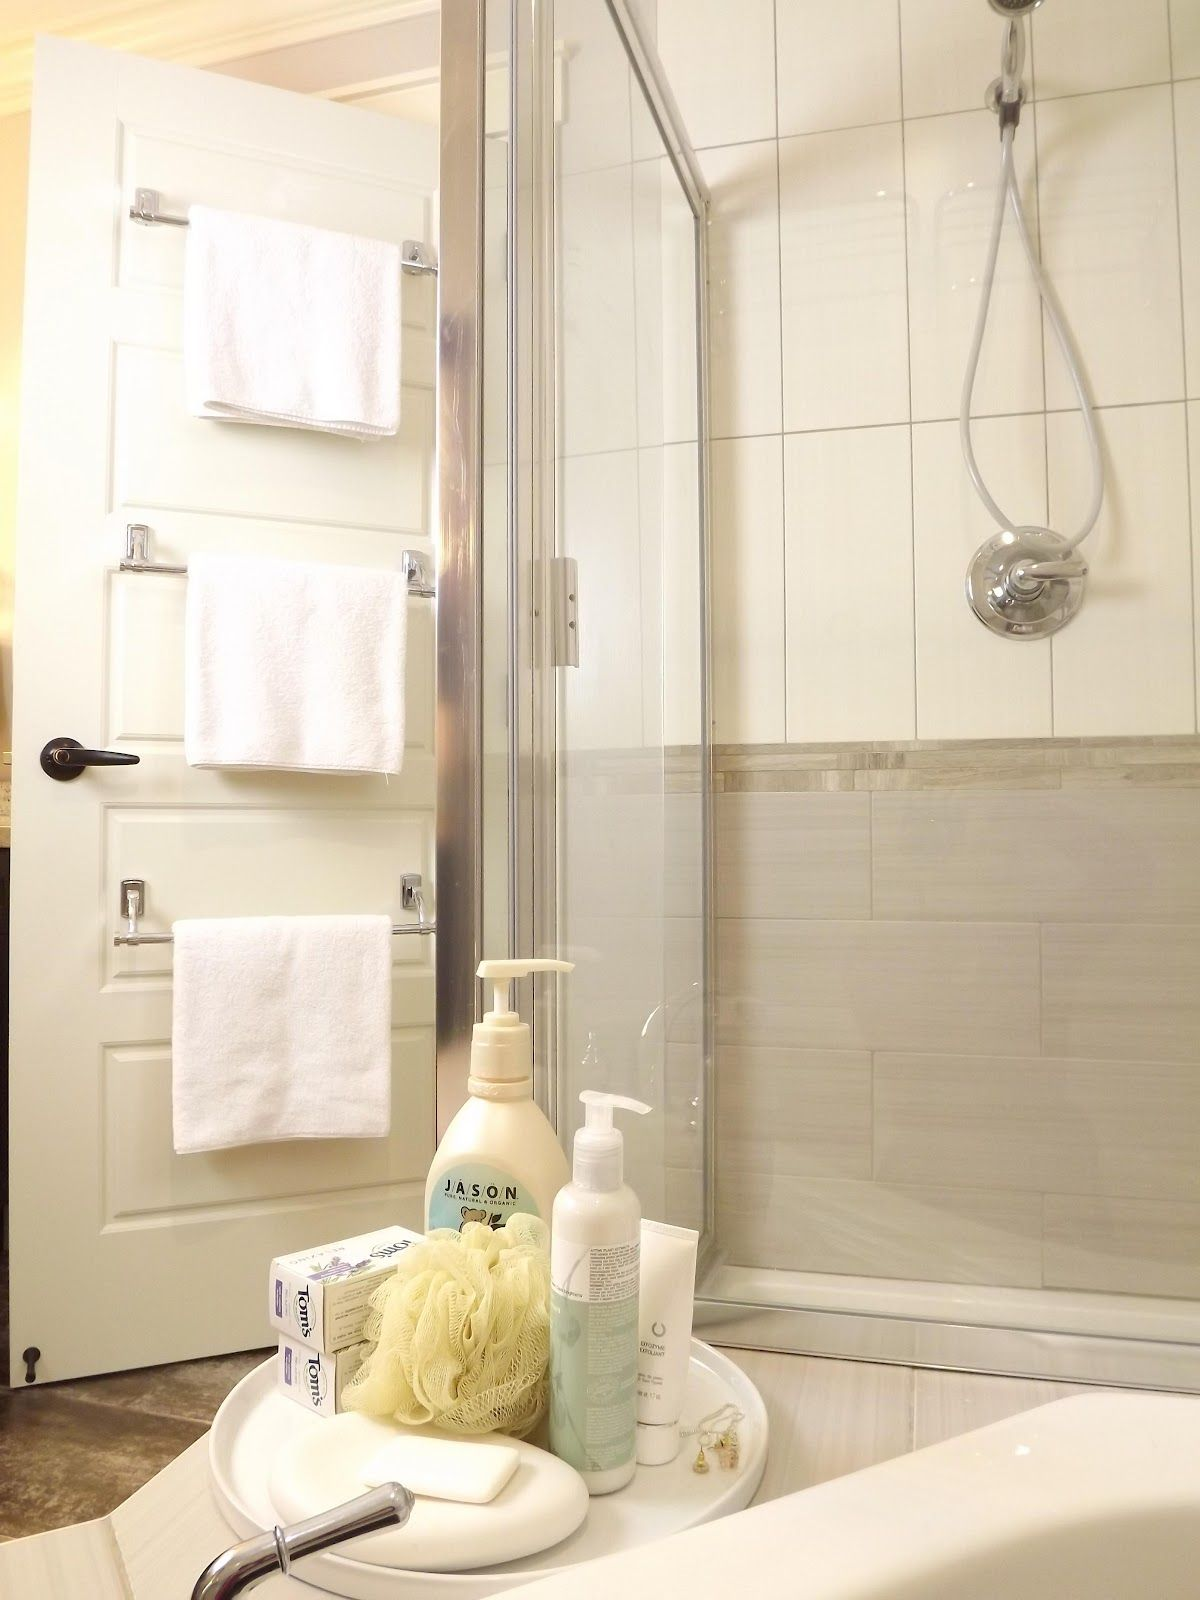 Attach Multiple Towel Bars To The Back Of The Bathroom Door With